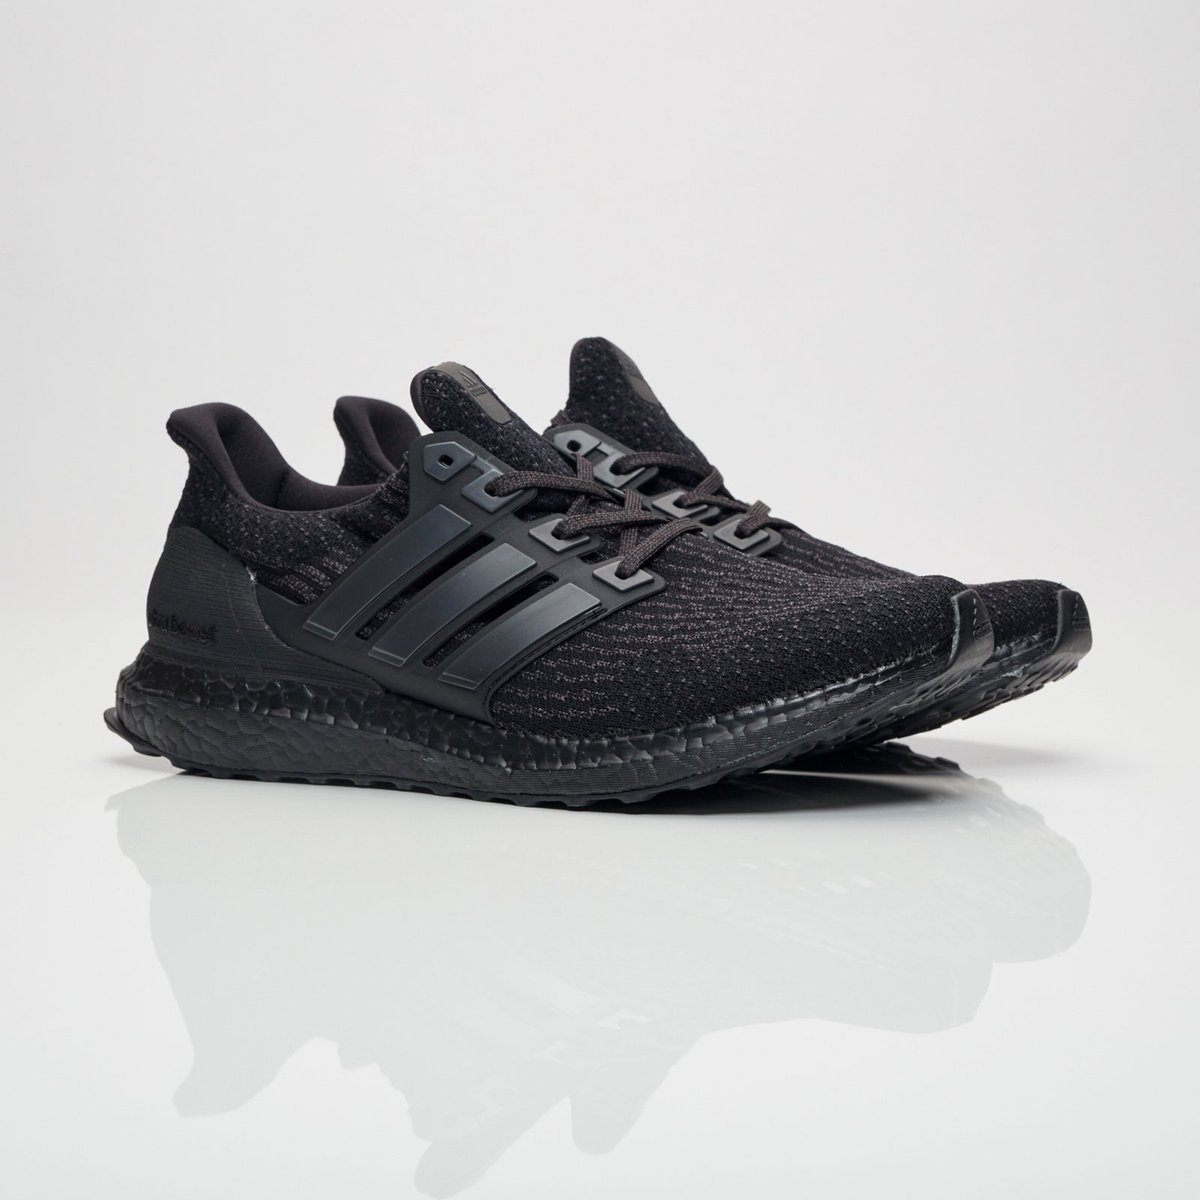 8c93d117d52f1 ... sweden adidas alerts on twitter releasing in 30 minutes. adidas ultra  boost 3.0 triple black